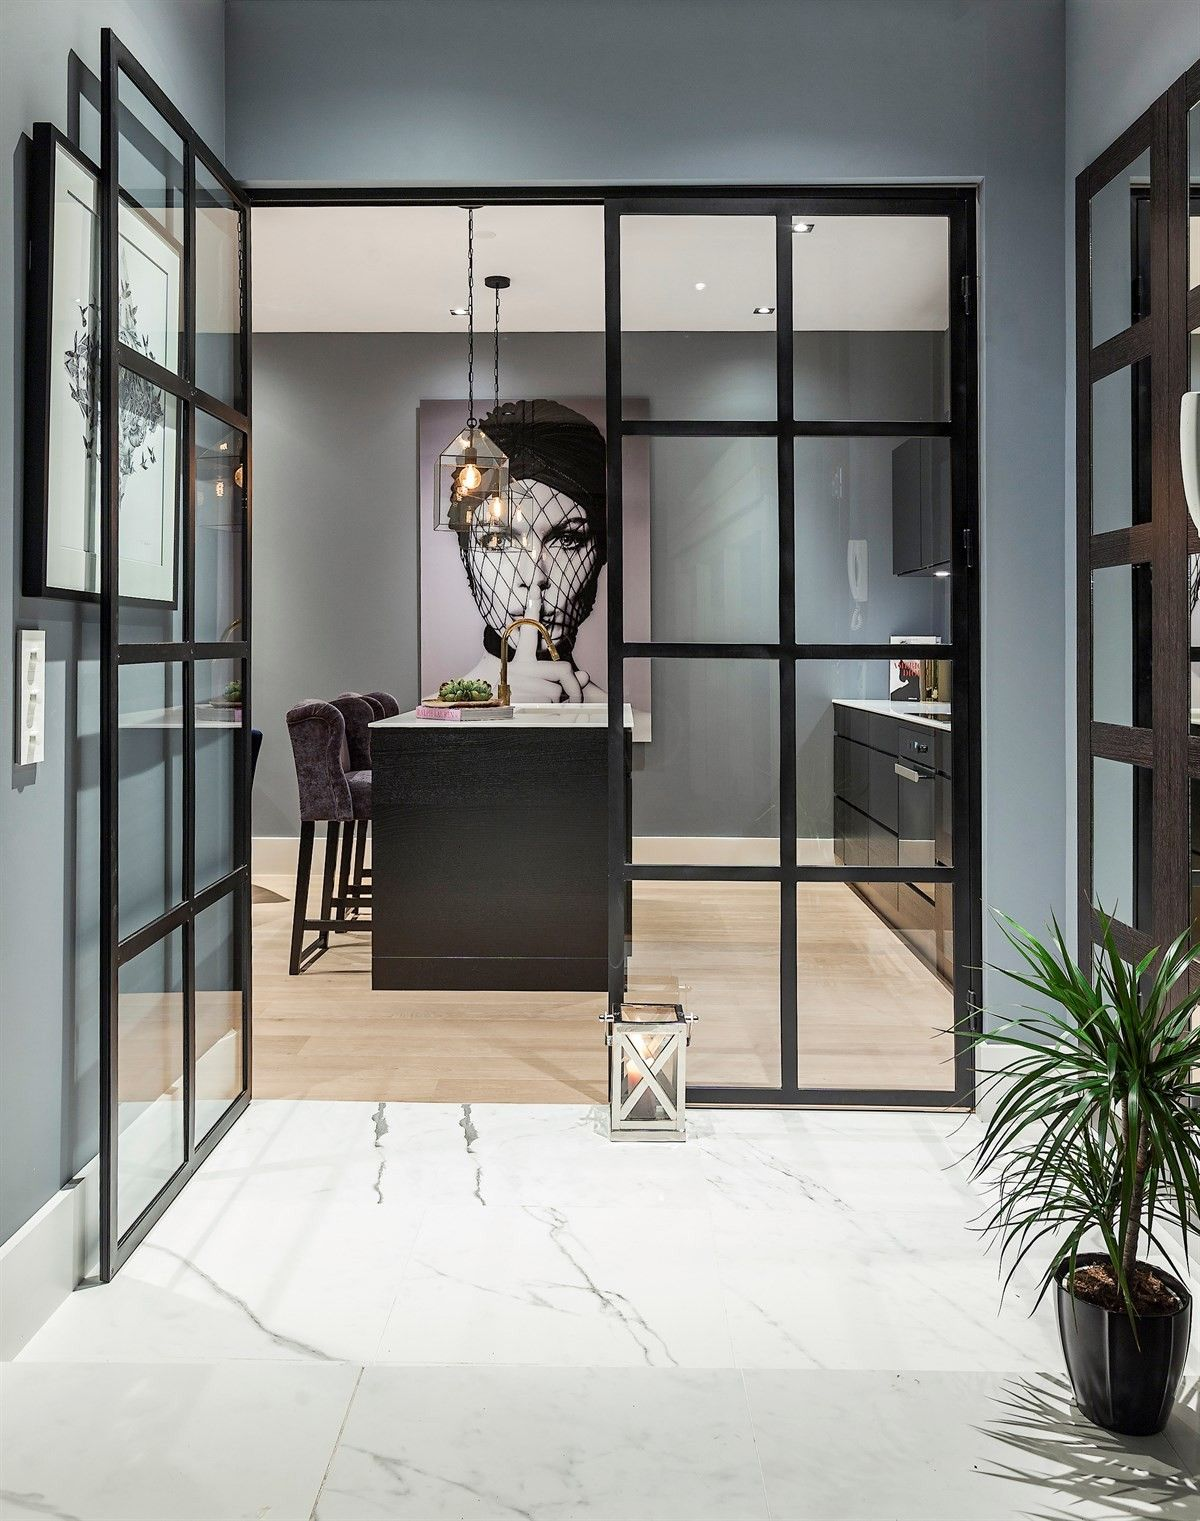 Home exterieur designtrends 2018 pin by caro on woonkamer ideeen  pinterest  interiors doors and